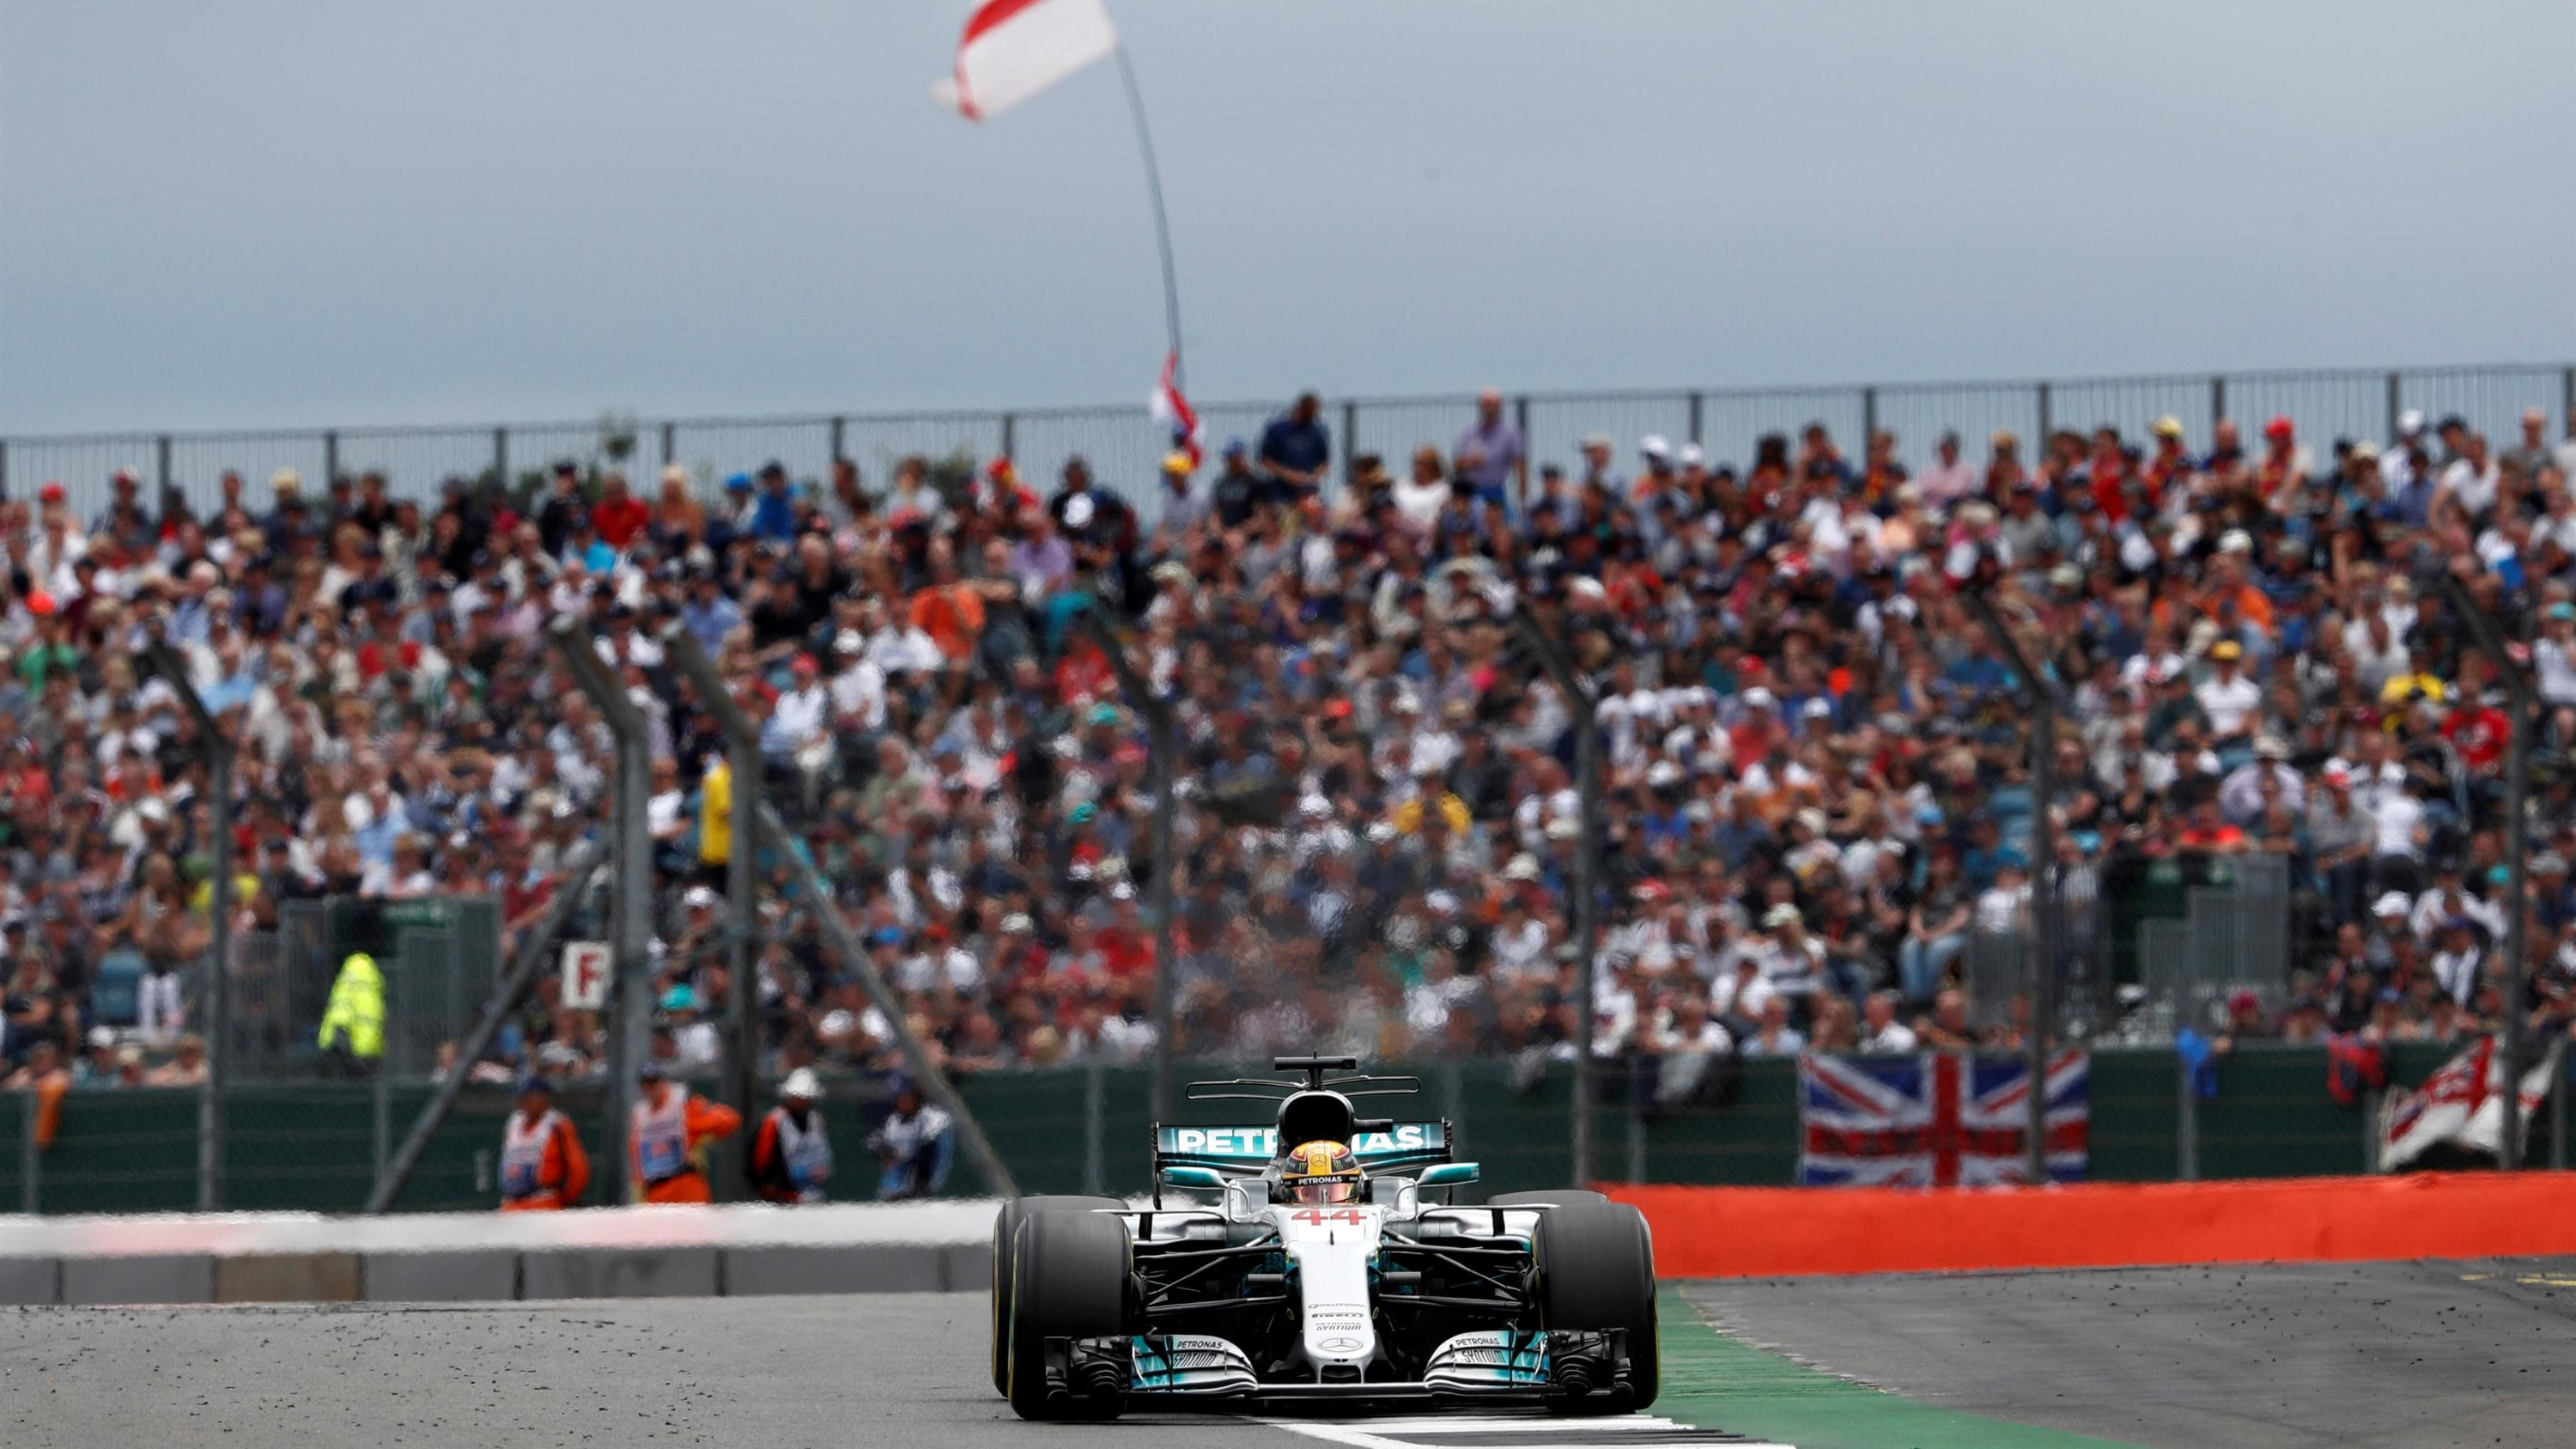 Lewis Hamilton beats Mercedes-GP teammate Valtteri Bottas to take French GP pole